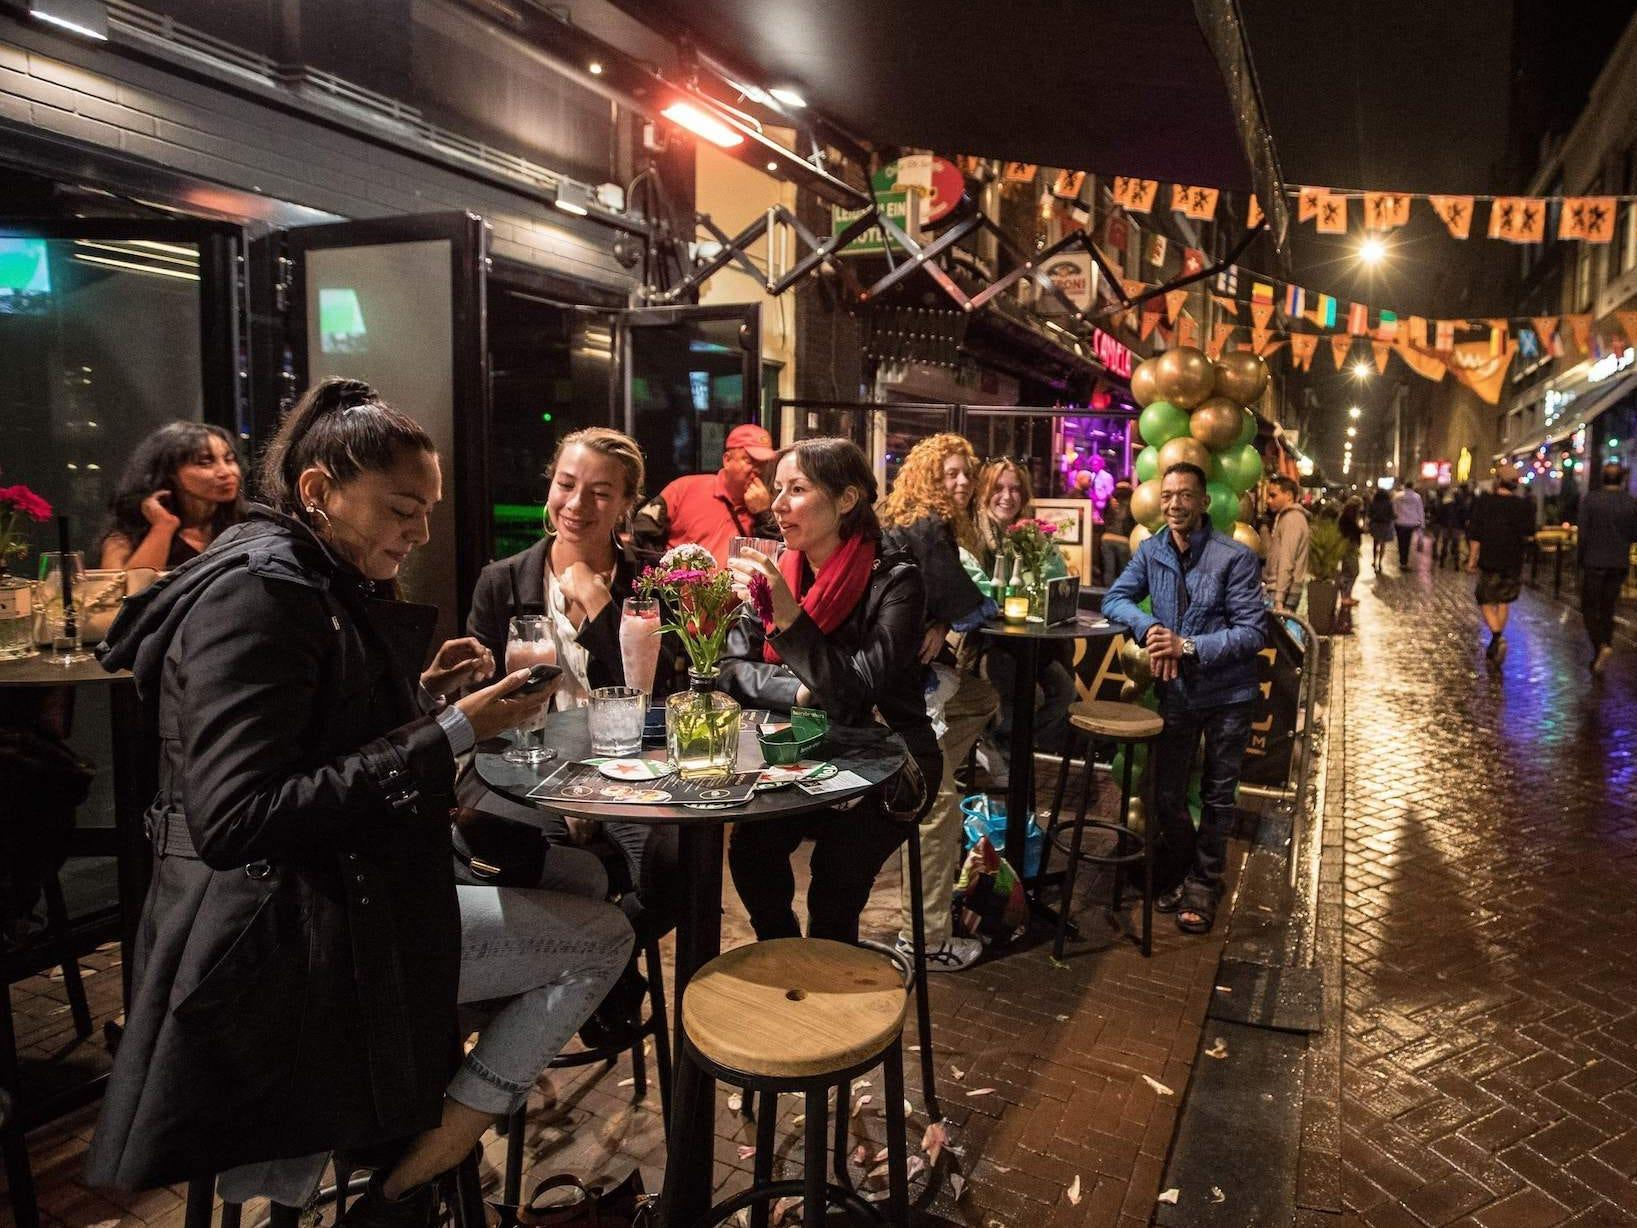 800 people claimed they were 'COVID-free' or vaccinated for a dance party in the Netherlands. Now 180 people have tested positive.